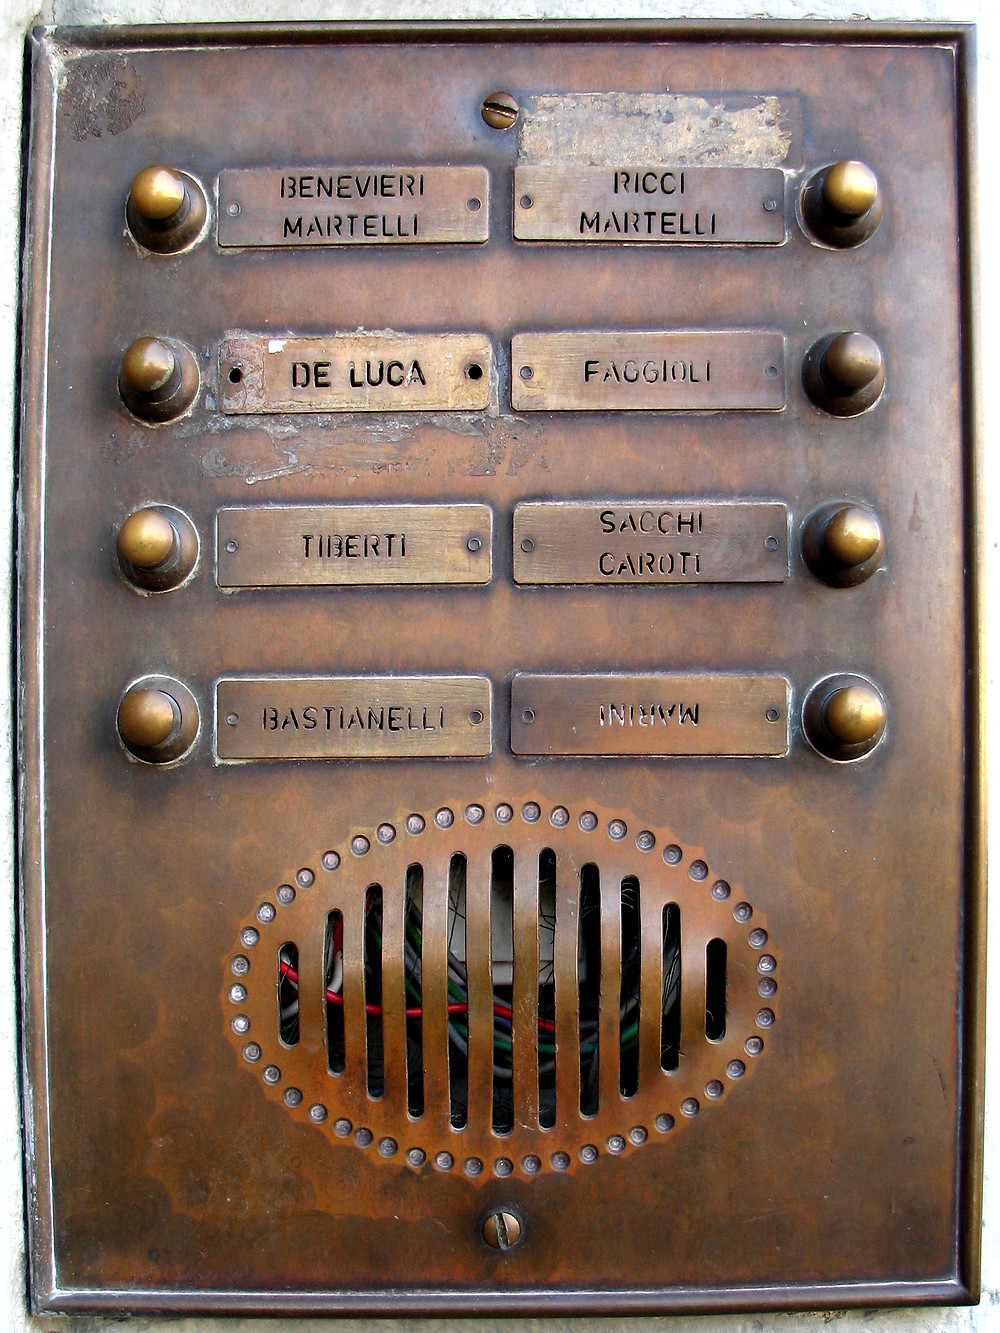 Communication panel with a real Art Deco / Buck Rogers / steampunk vibe.